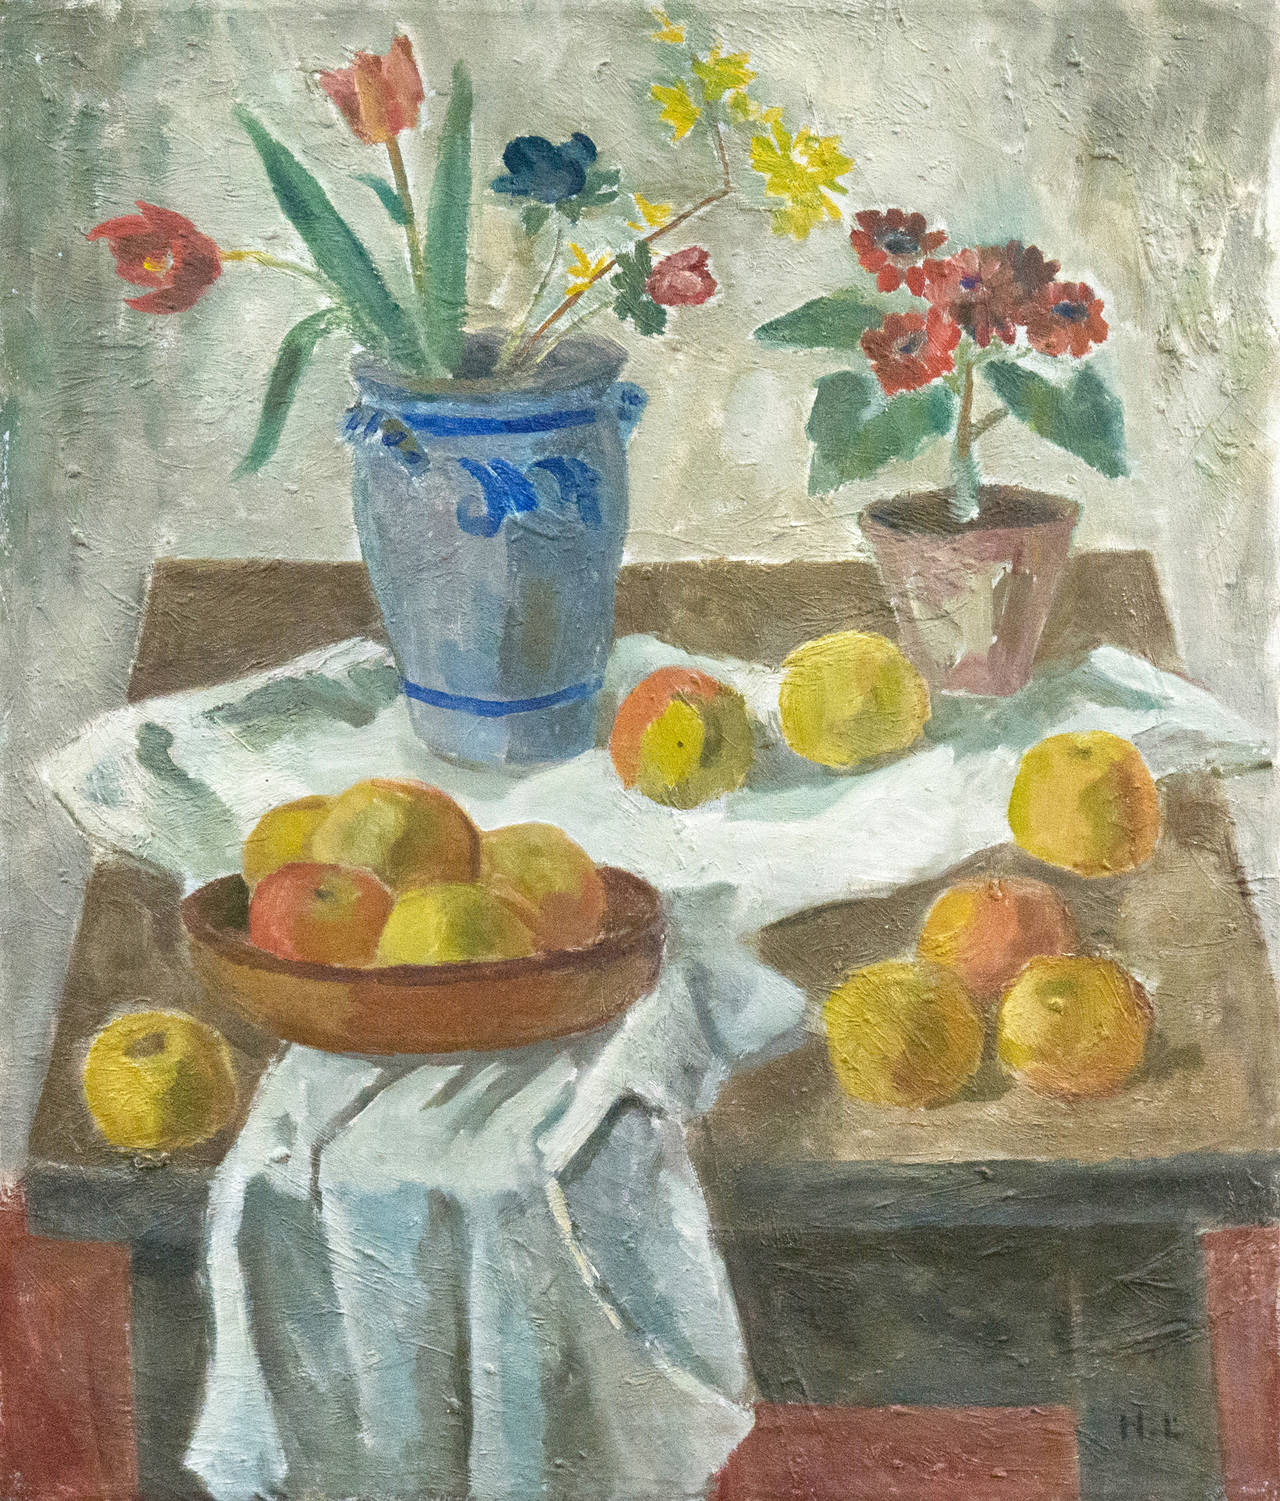 Harald Leth Danish Post Impressionist Still Life Of Flowers And Golden Apples Art Deco National Art Museum Painting Still Life Museum Of Modern Art